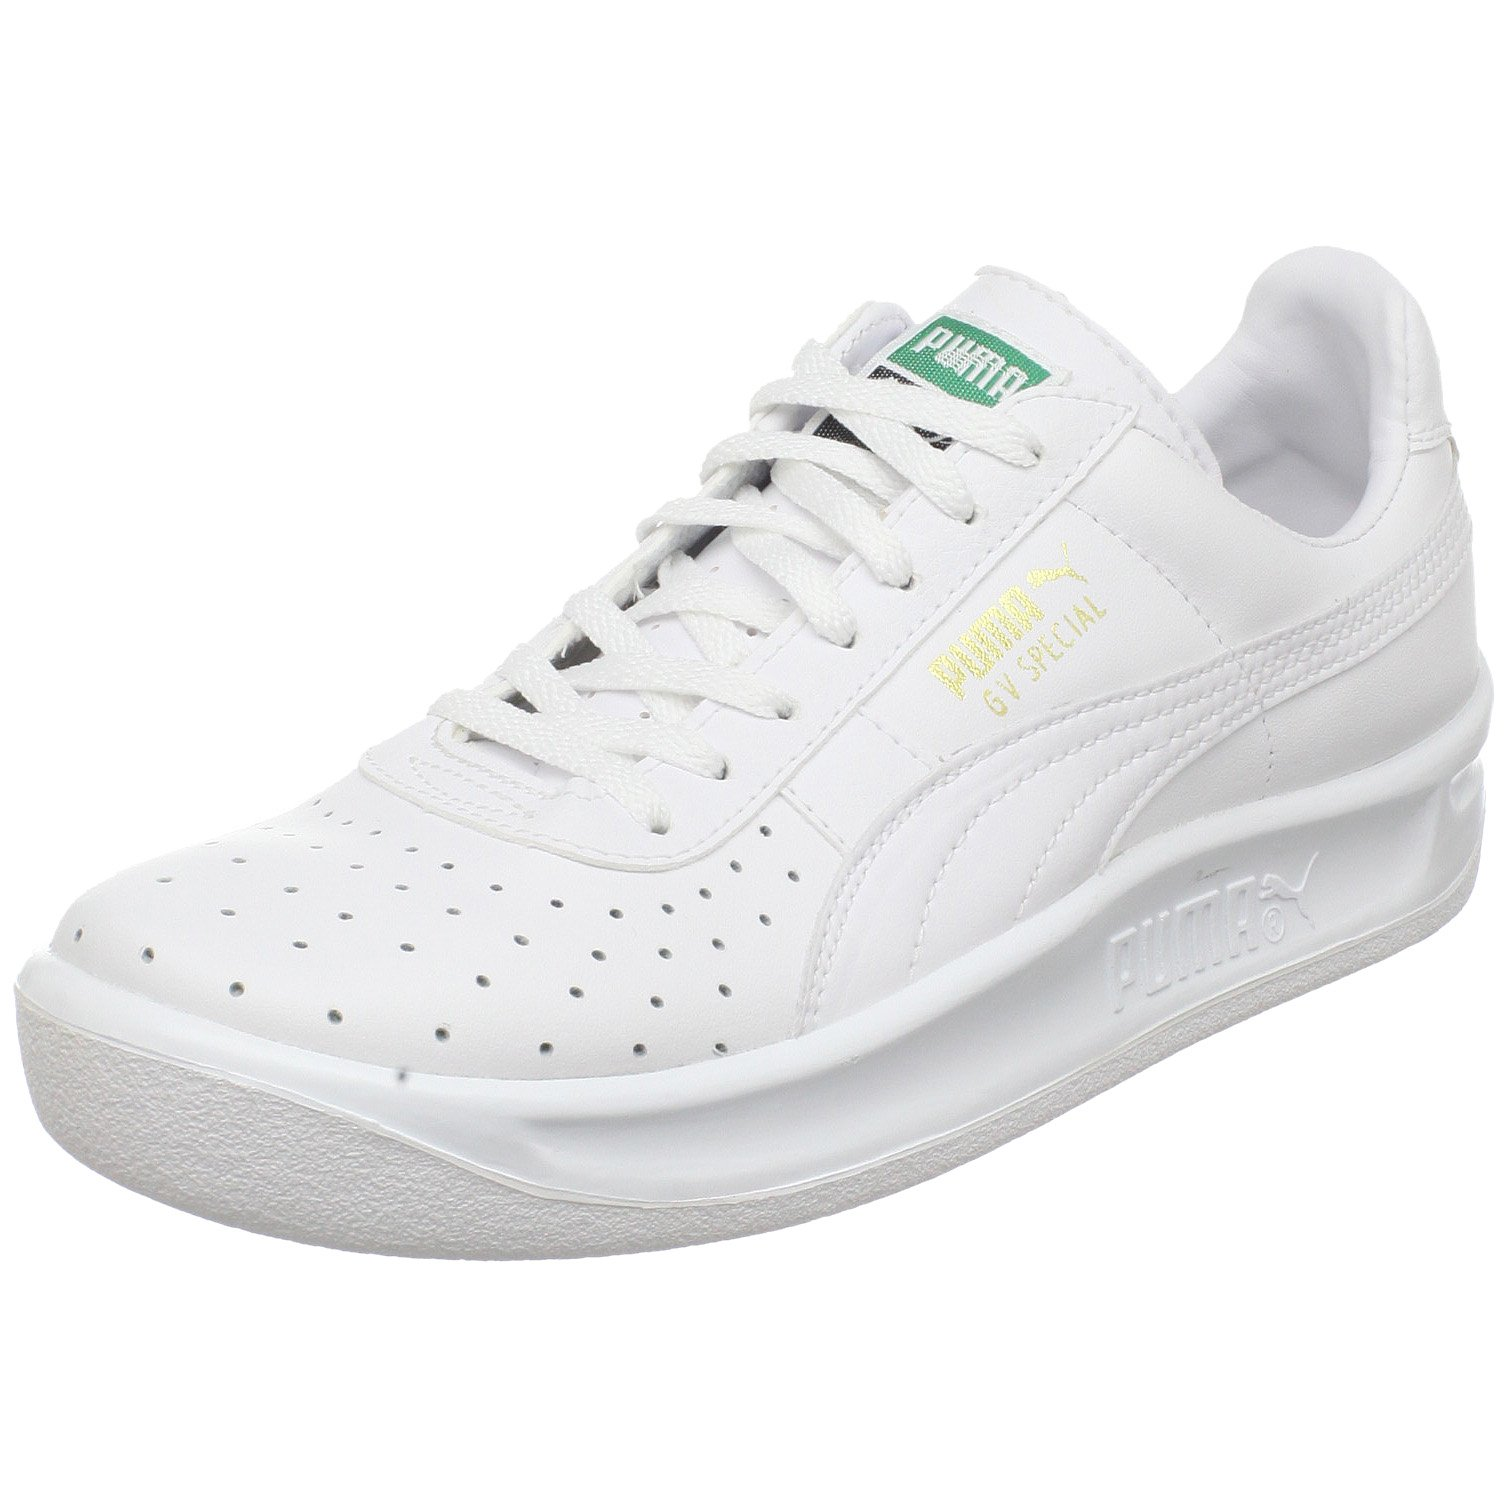 PUMA GV Special Sneaker White, 5.5 M US Big Kid